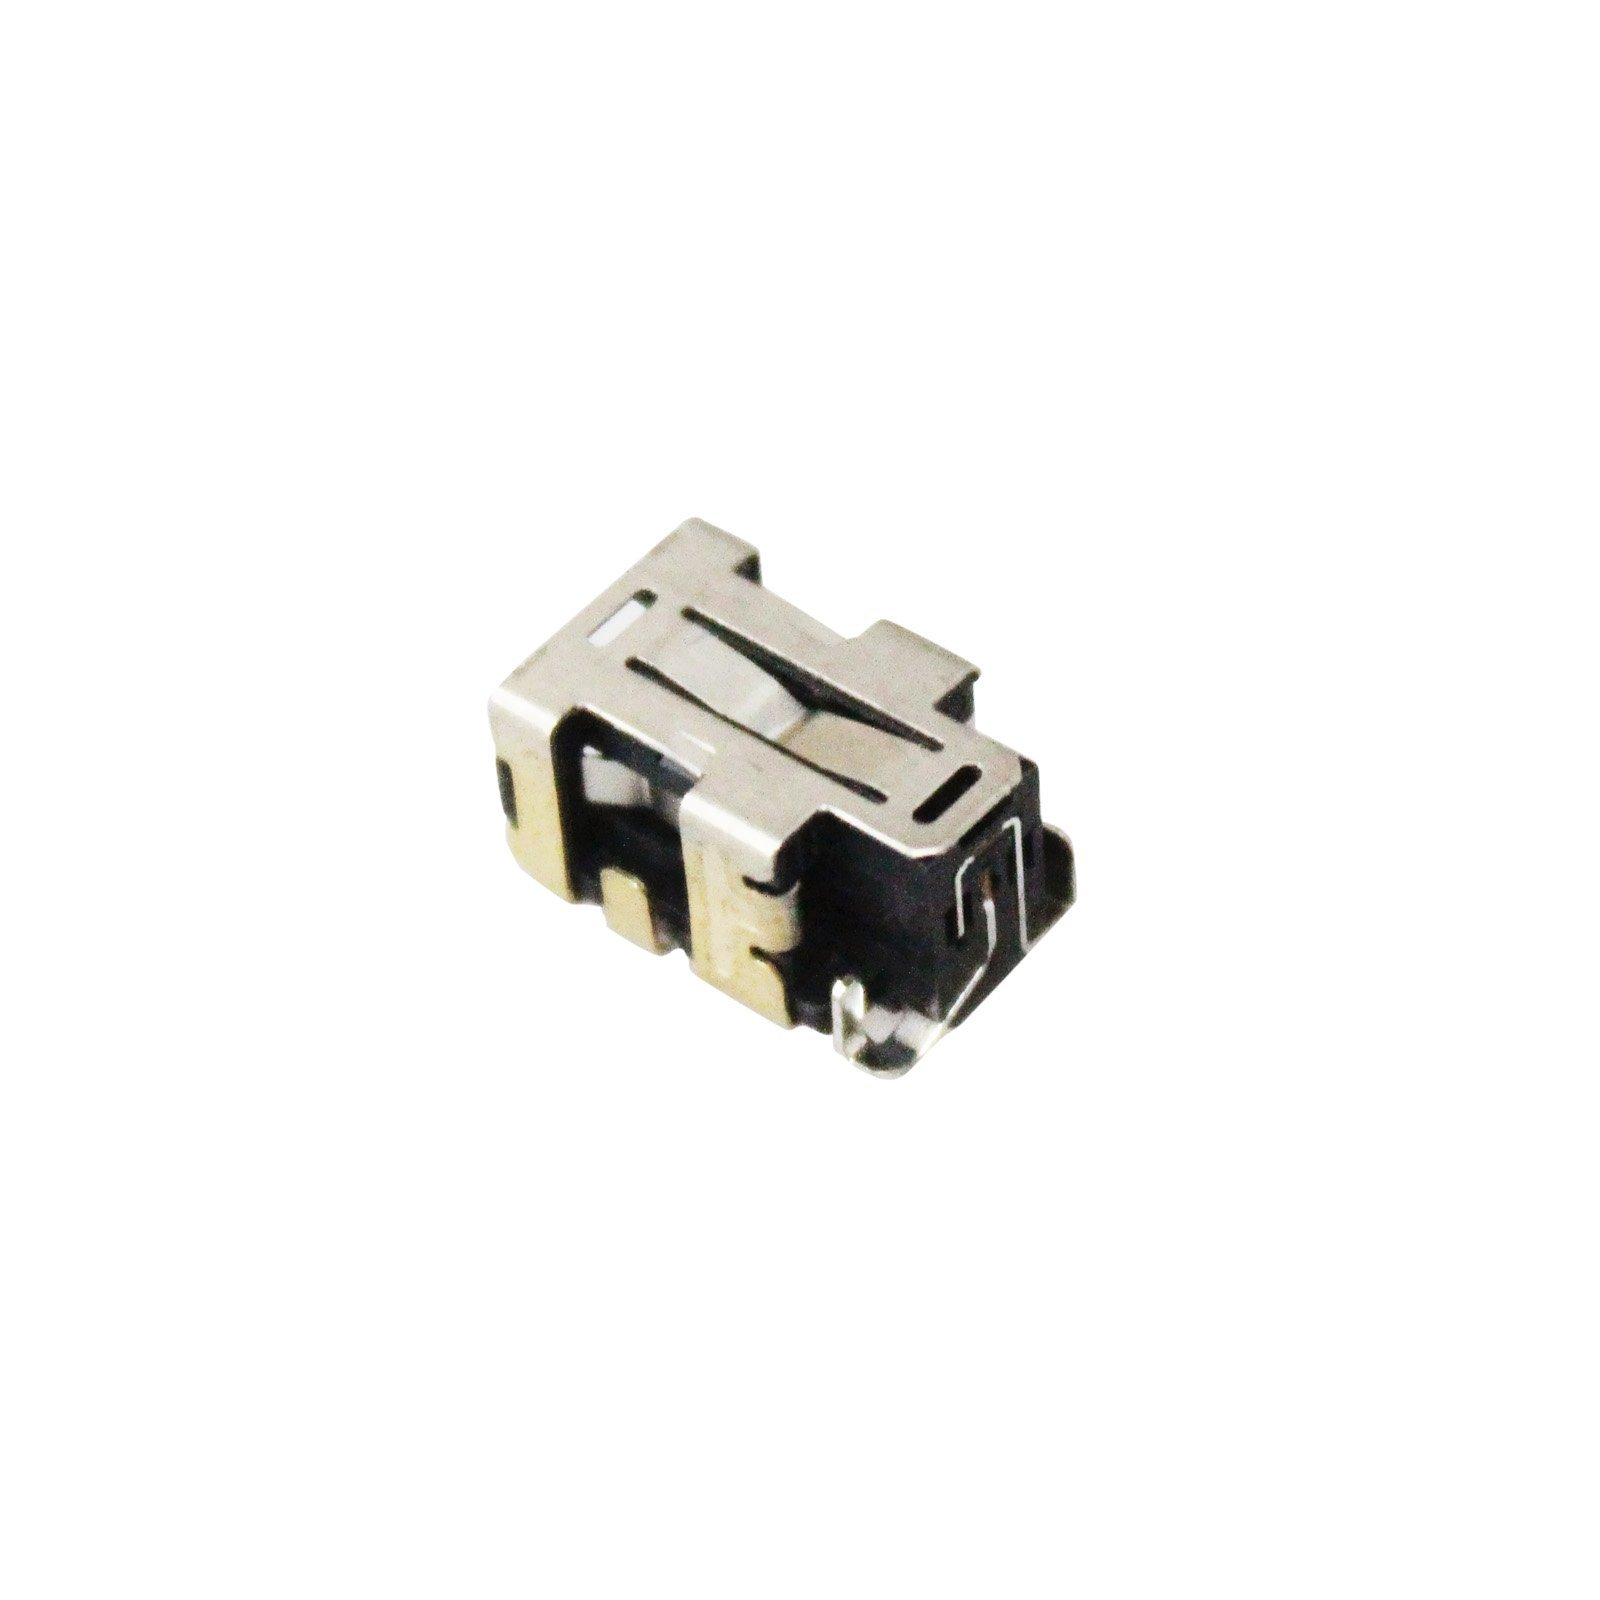 GinTai DC Power Jack Replacement for ASUS Compatible with n501jw ux501jw G501J G501JW G501JW-DS71 UX501V UX501VW by GinTai (Image #7)